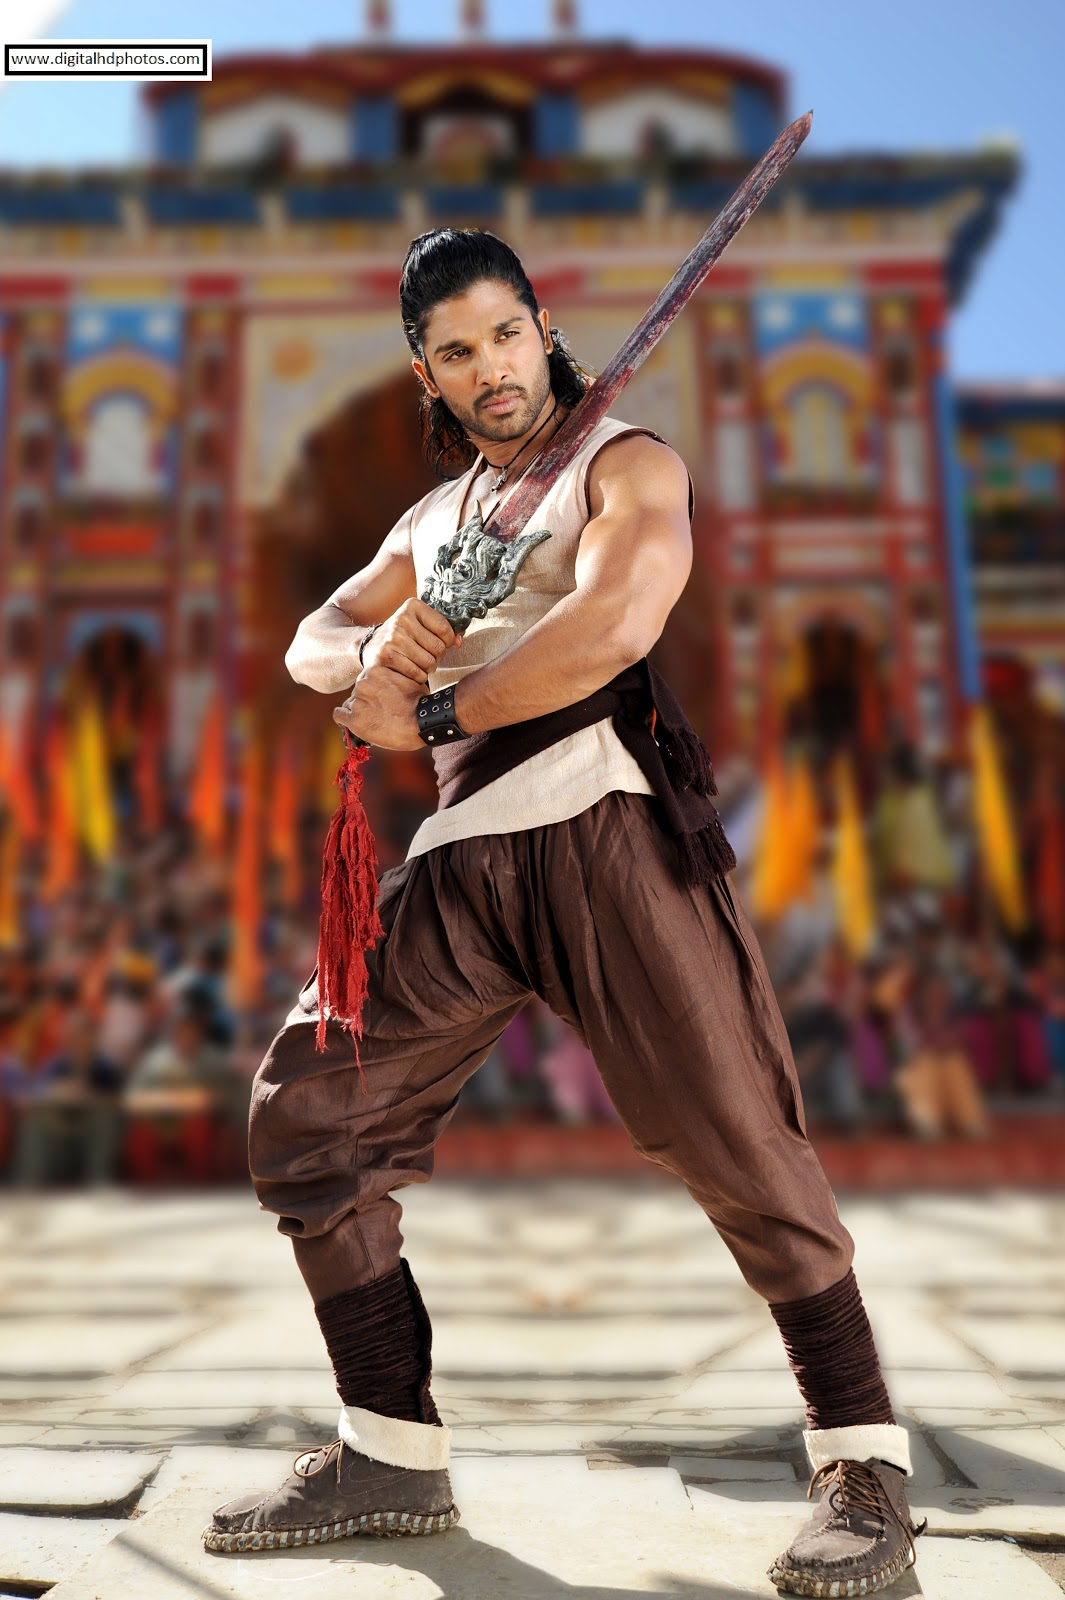 allu arjun - digital hd photos